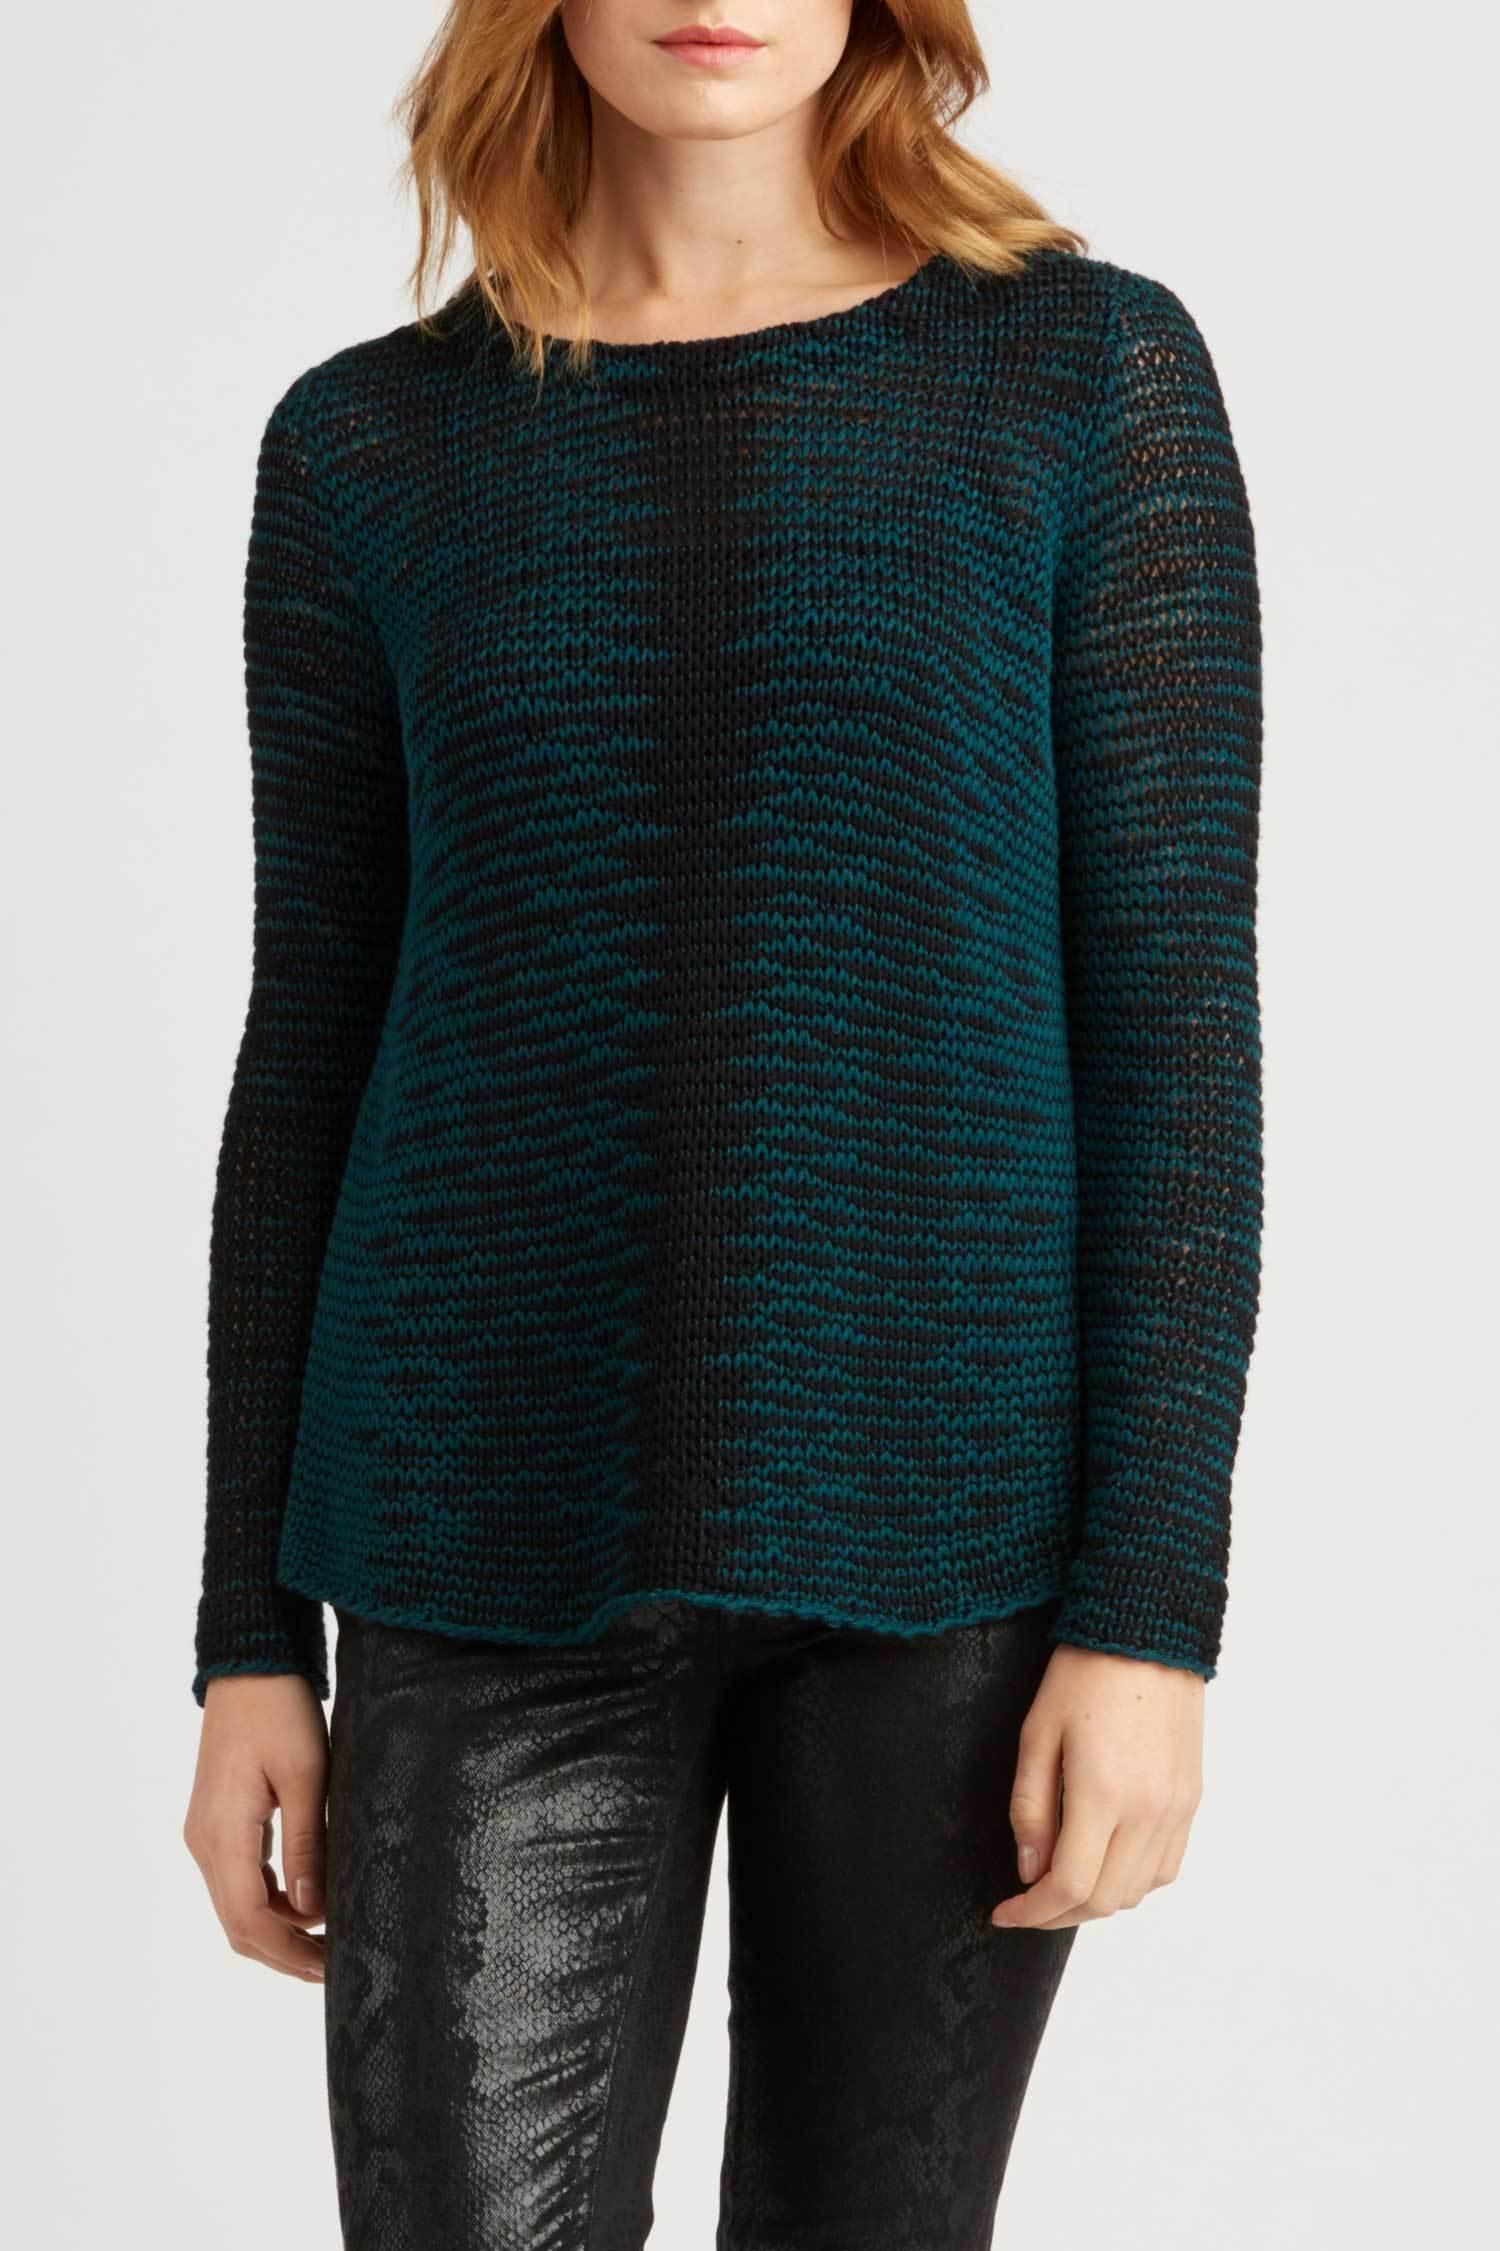 Womens Teal and Black Patterned Knit Sweater | Organic Cotton